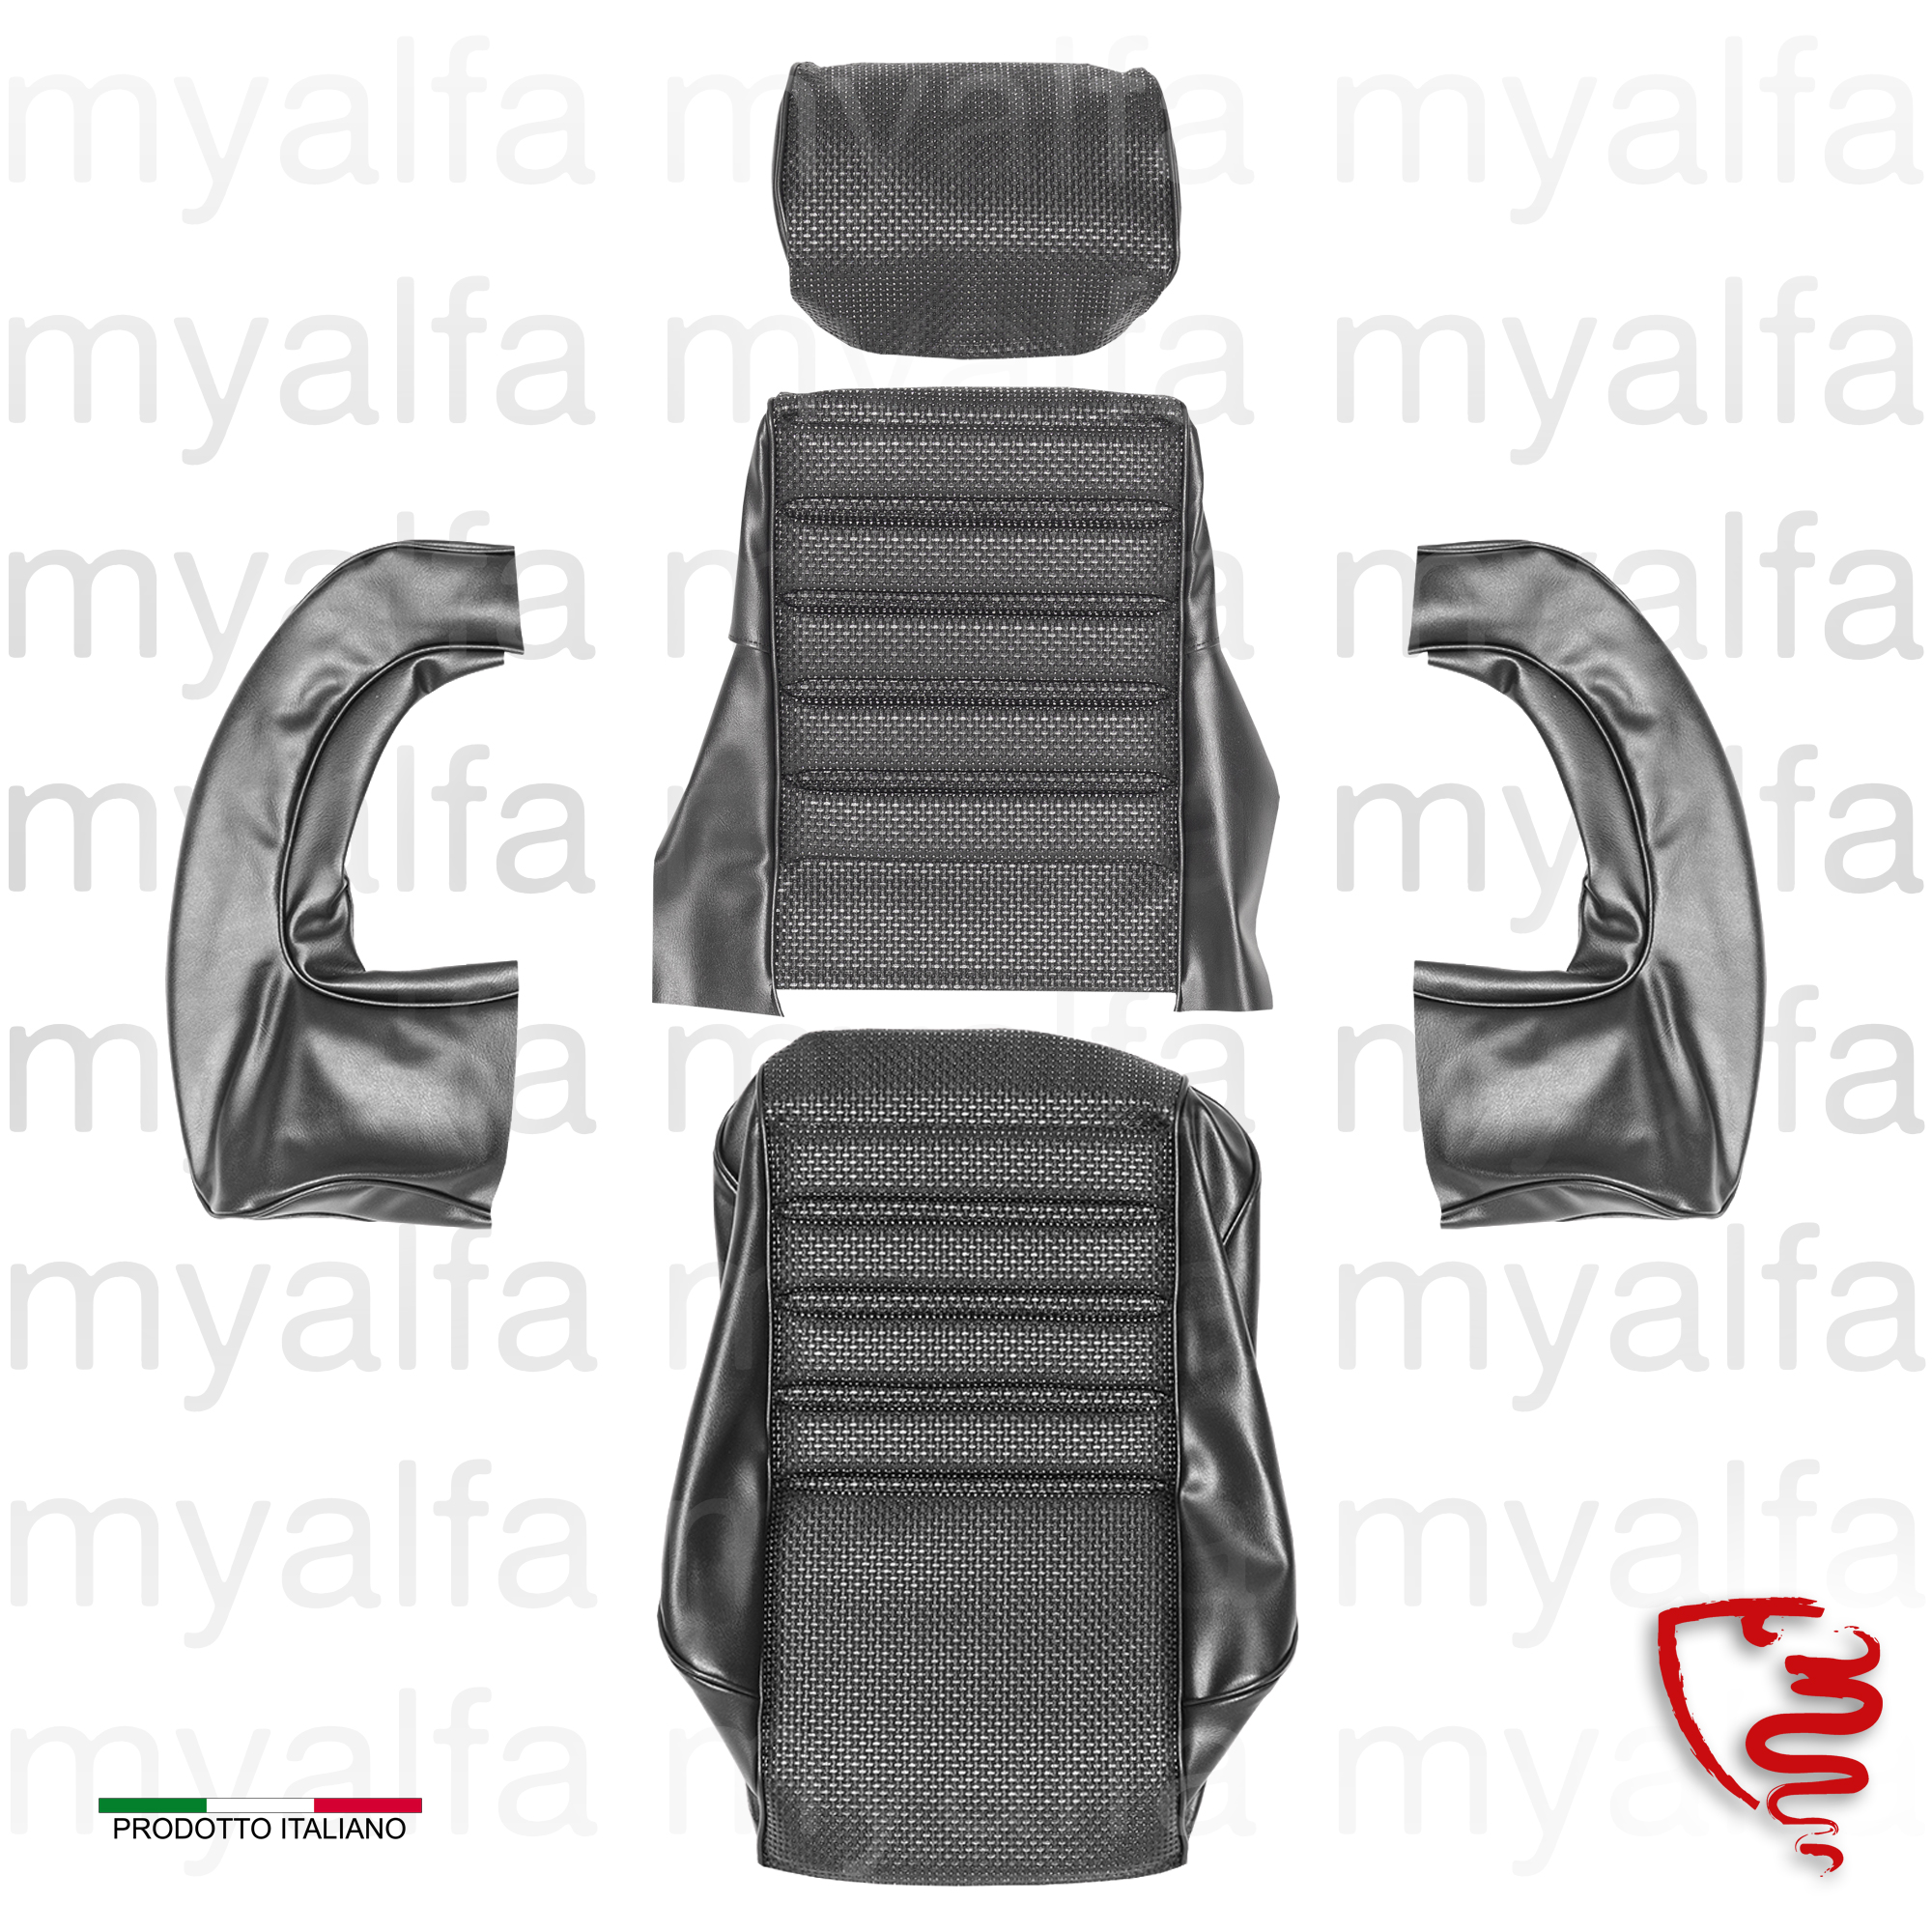 Covers front seat drt. 1750 GTV 1st series - Black for 105/115, Coupe, 1750, Interior, Seats, Seat covers